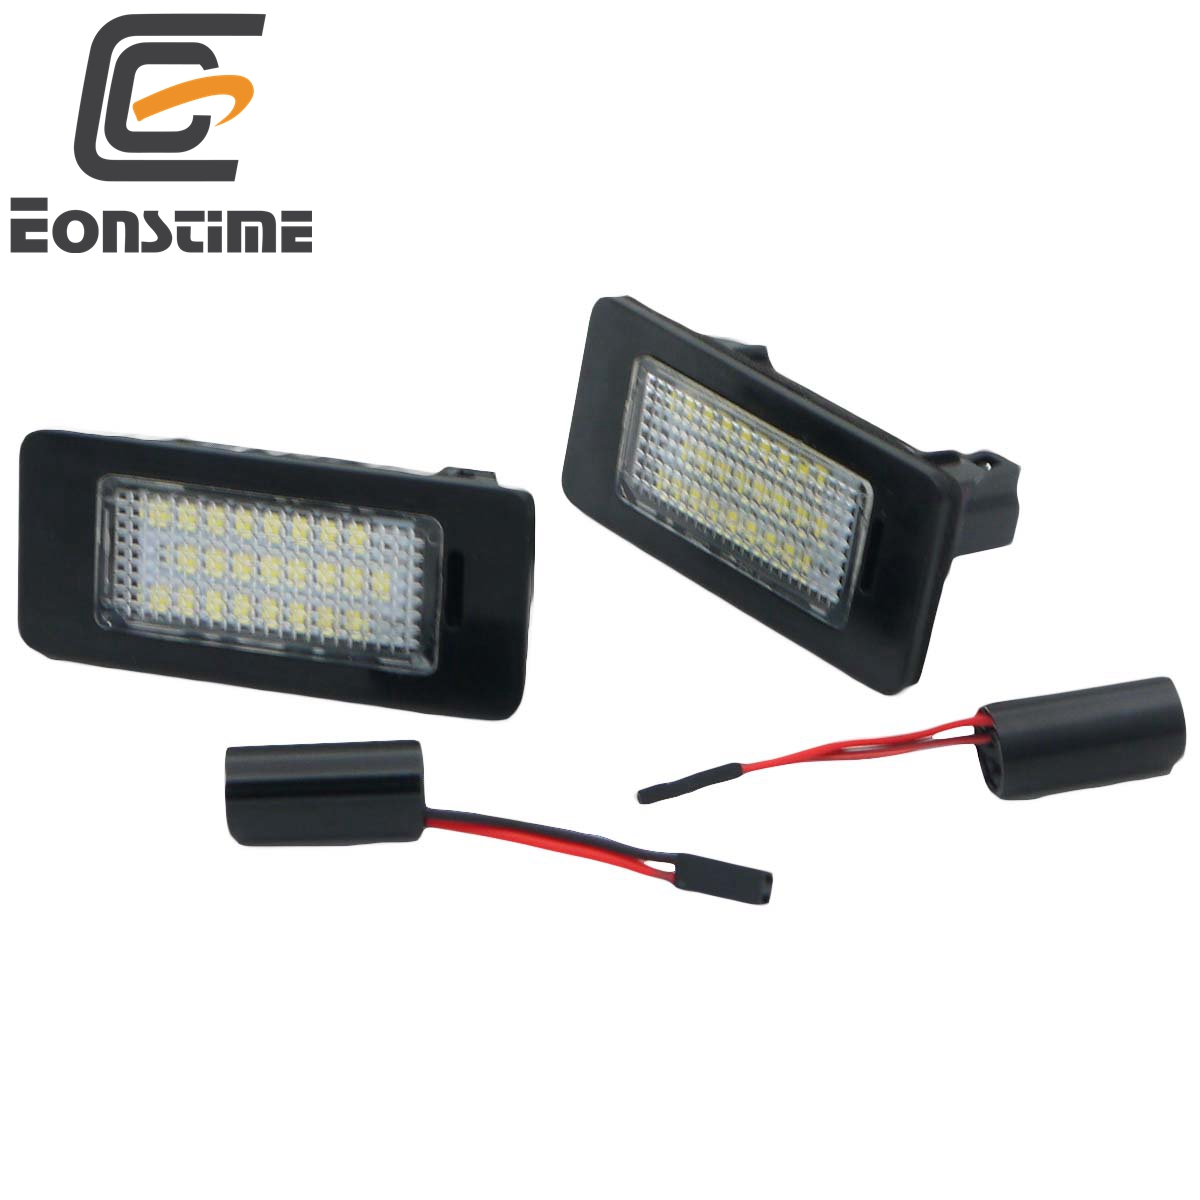 Eonstime 2Pcs 18SMD LED License Plate Number Light Lamp For VW Golf VI Variant Jetta Passat Variant Sharan 7N Touran GP2 Touareg high quality plastic and led bulbs 2pcs white error free 18 led license plate light lamp kit for vw golf eos passat polo phaeton